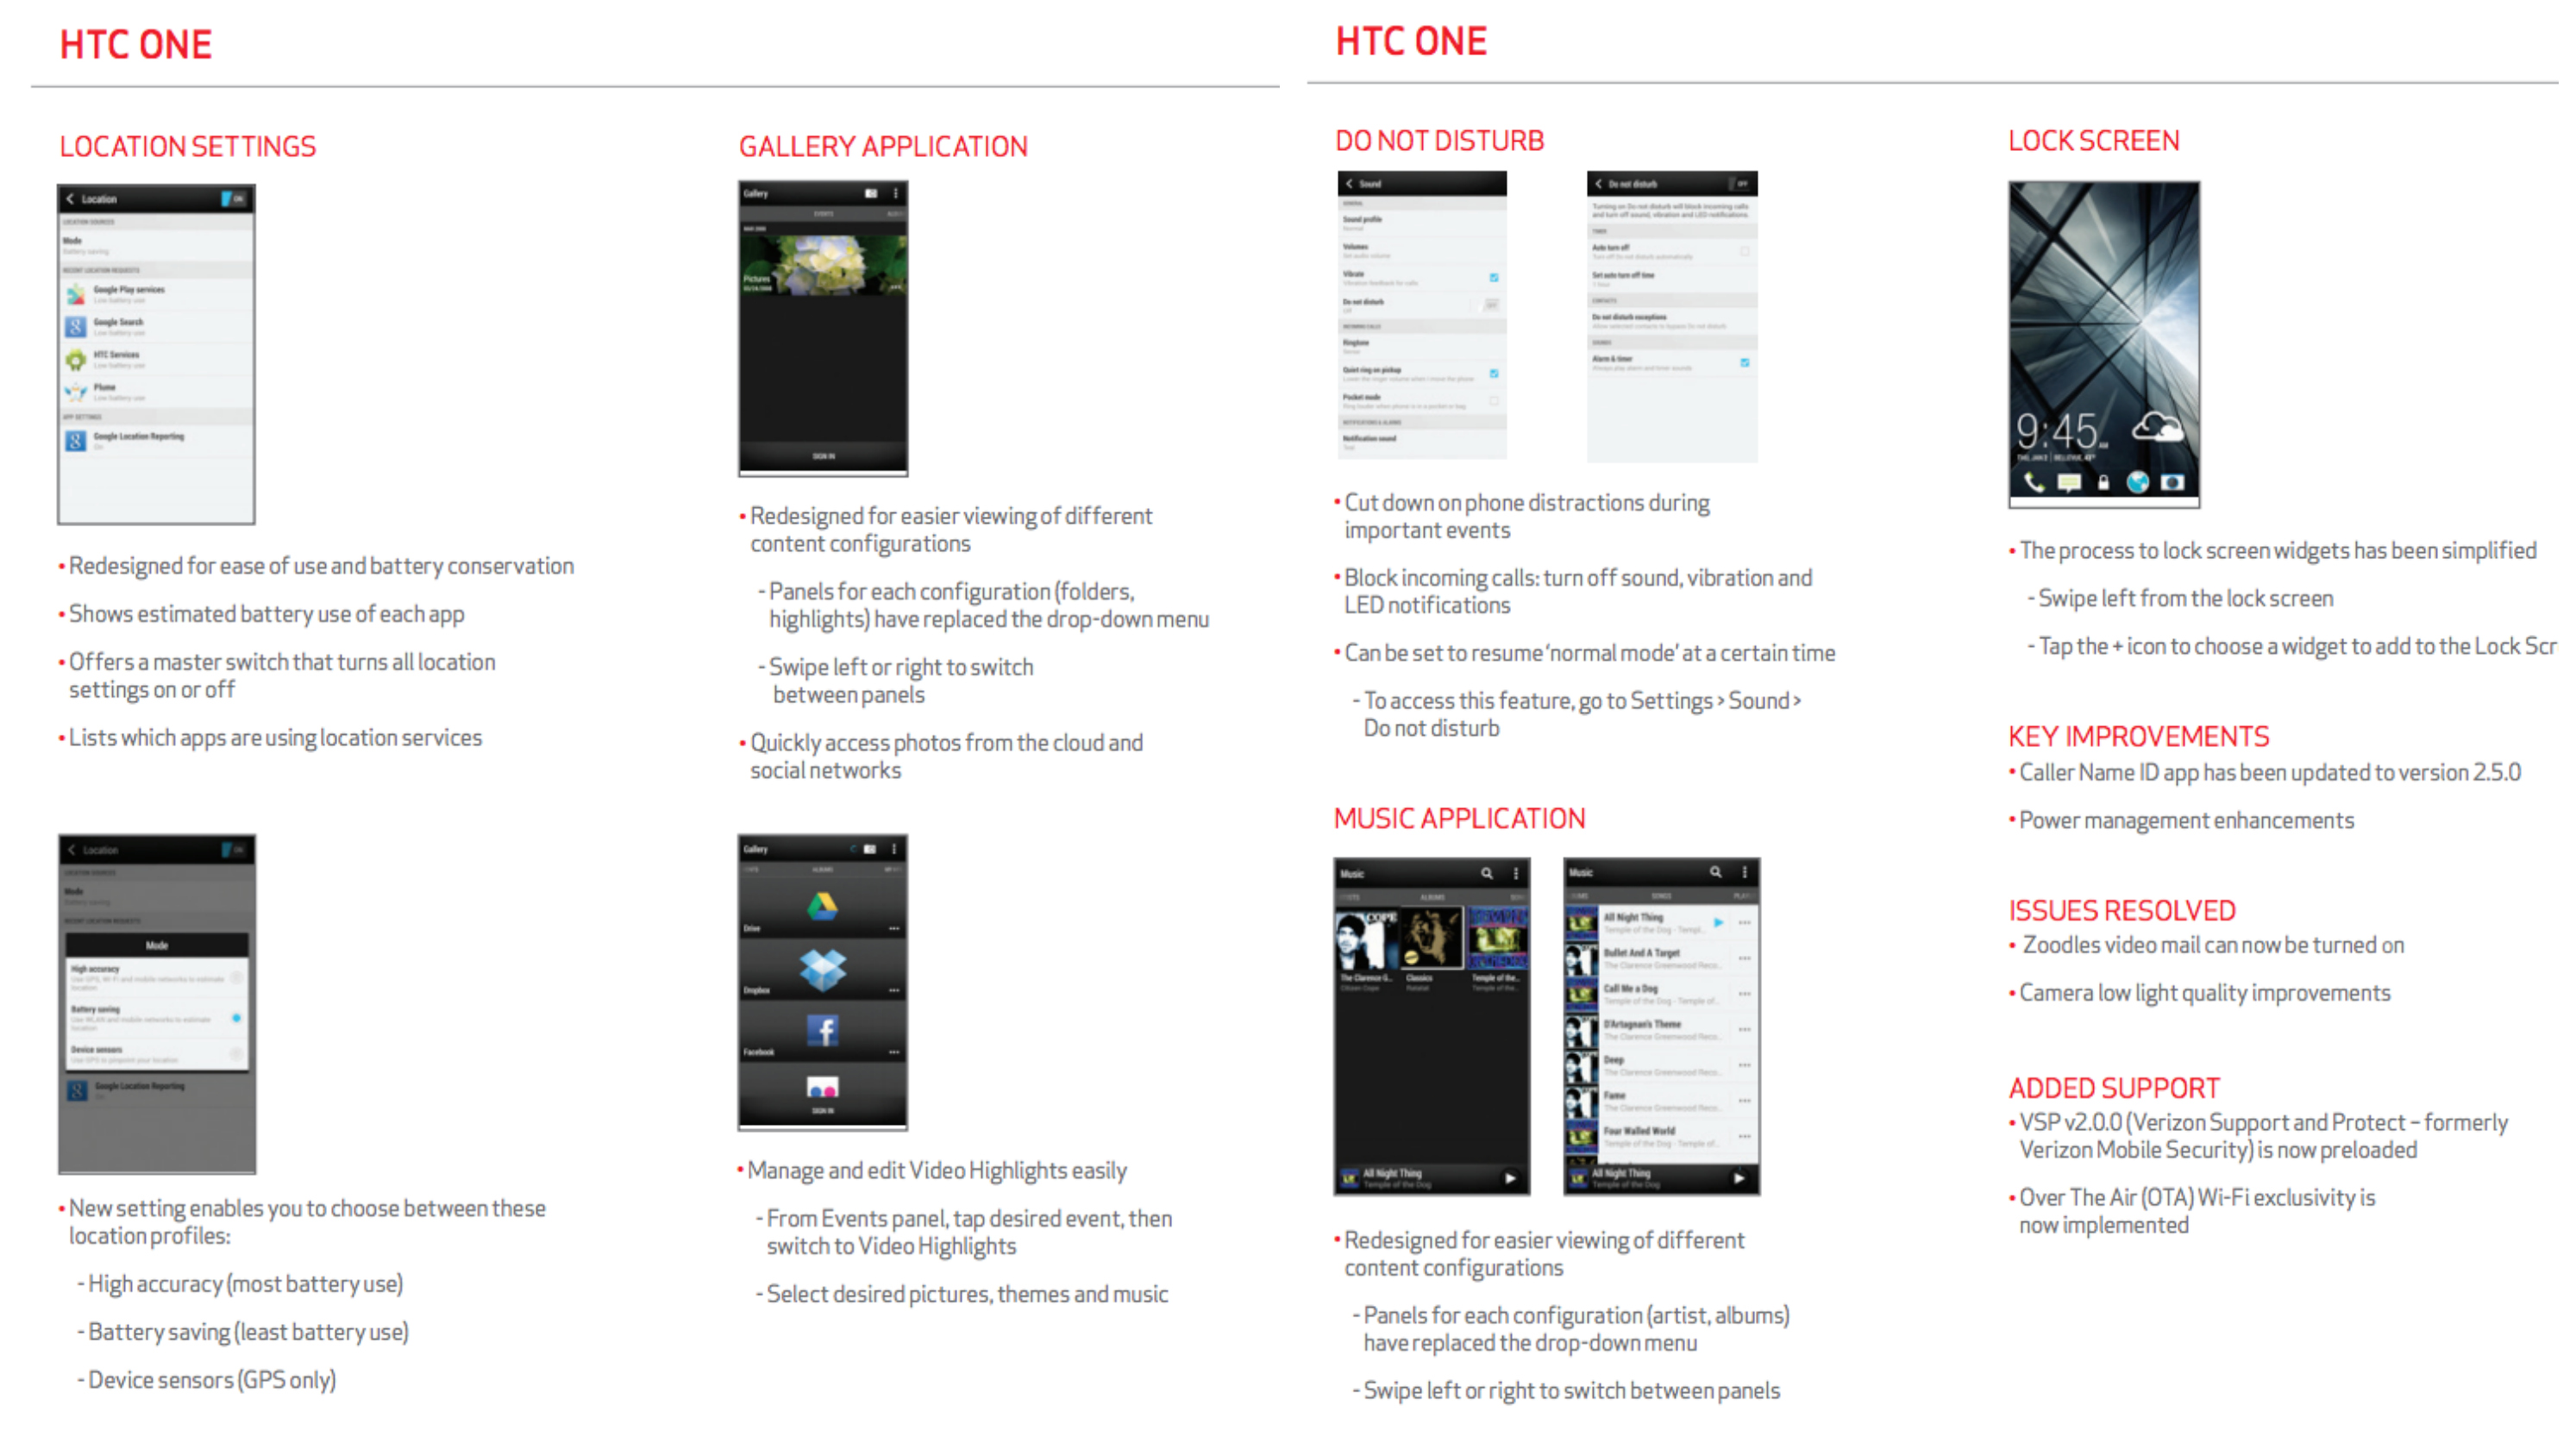 KitKat update for Verizon HTC One rolling out now, here's